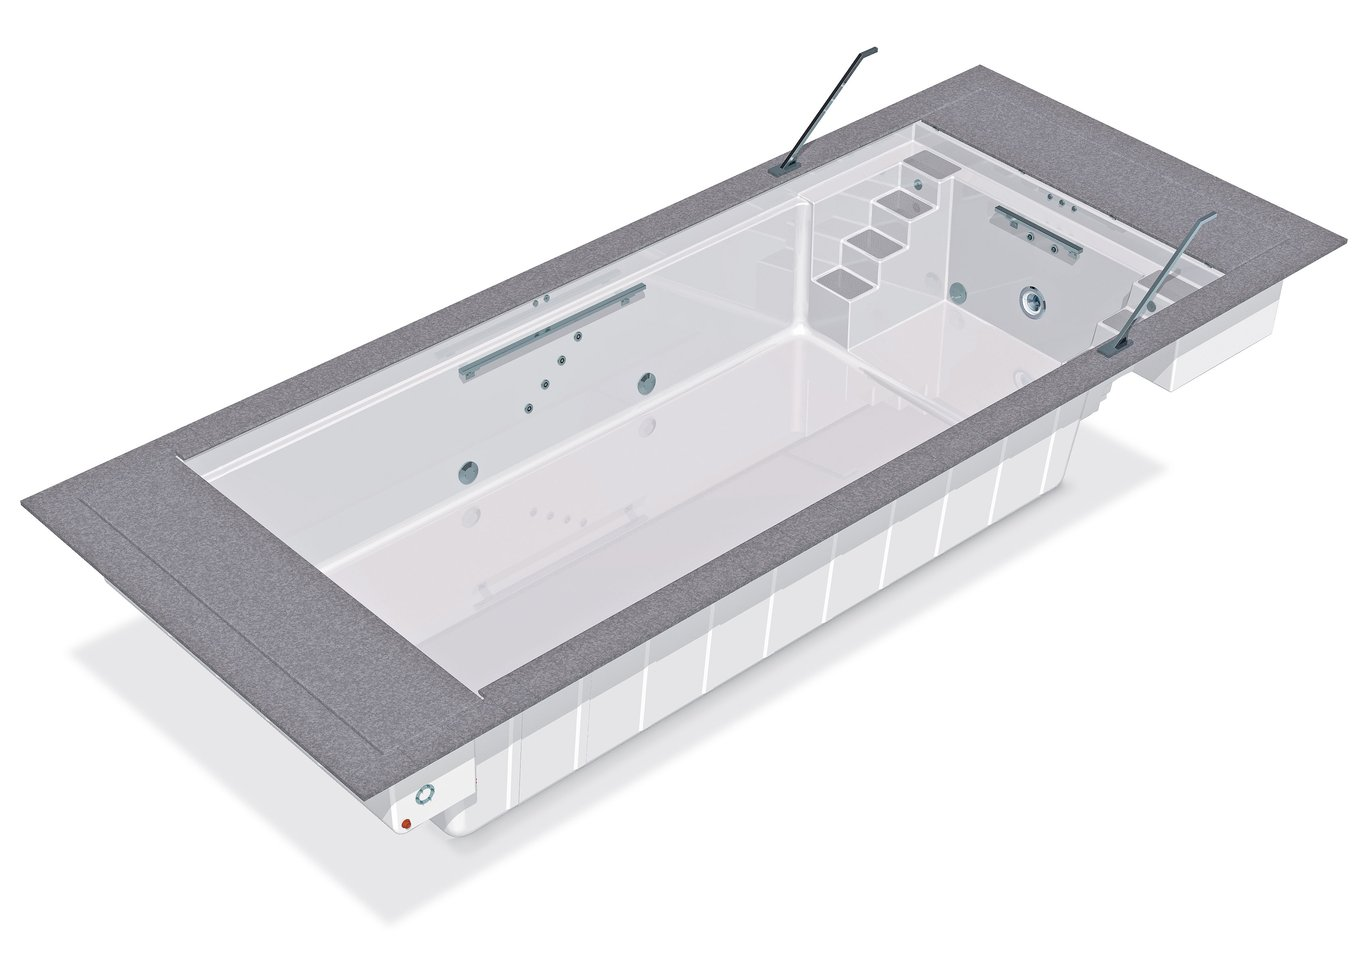 Composite pool with 4 steps on both sides